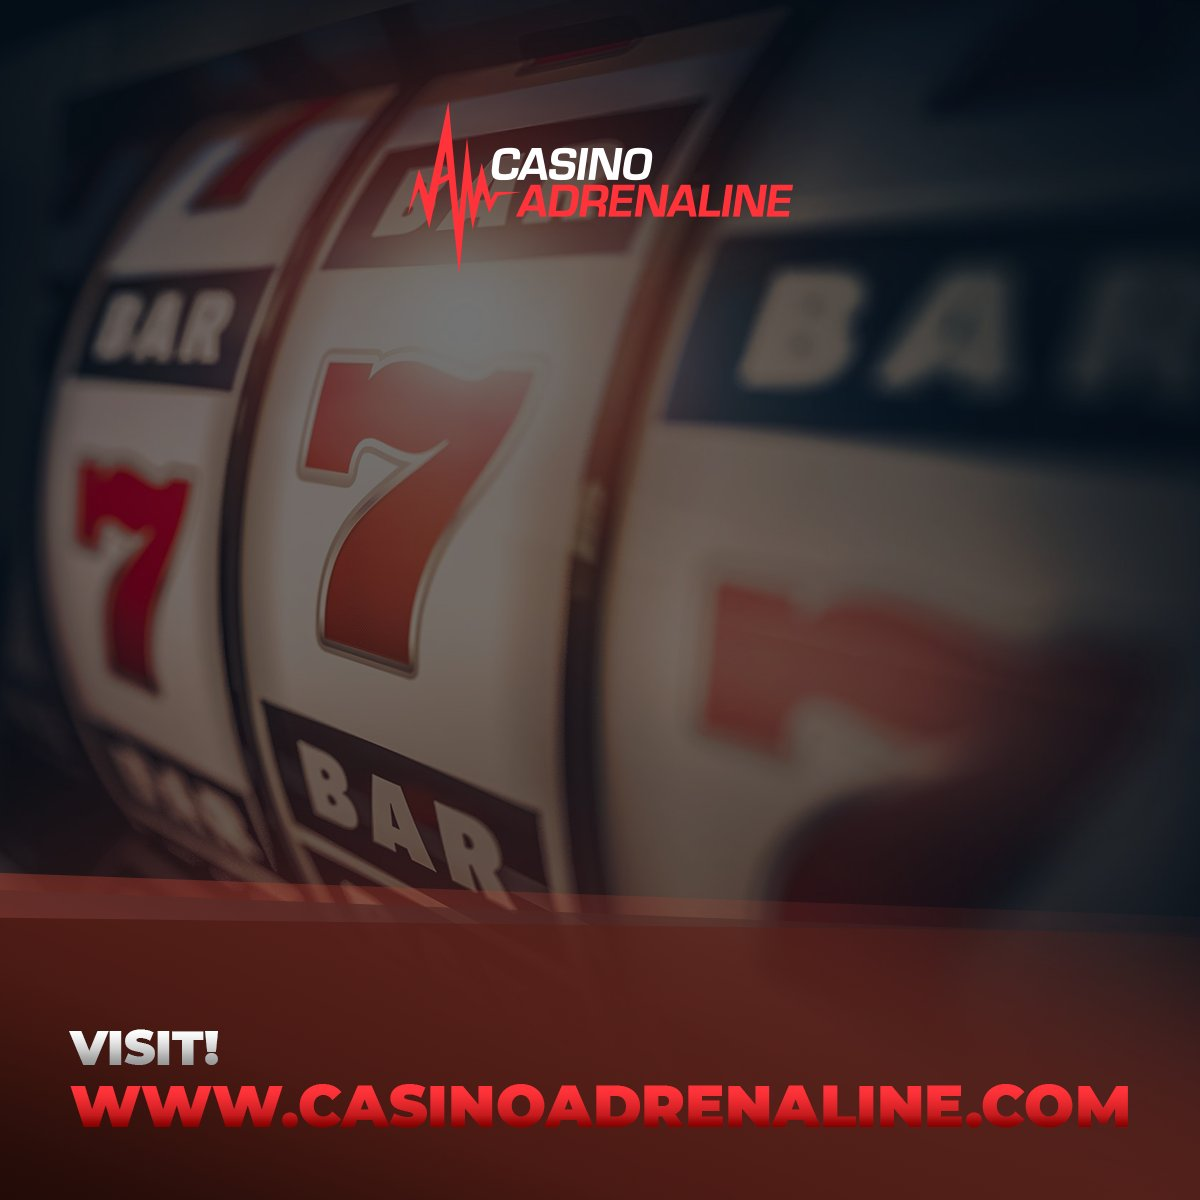 test Twitter Media - Have you checked our today's TOTAL JACKPOT? 😮👌🎲♥ #CasinoAdrenaline #TotalJackpot #CasinoAdrenalingaming #casinos #slot #casinoluck #enjoythegame  Visit: https://t.co/oSXfIB6U5E https://t.co/ik6yyulija